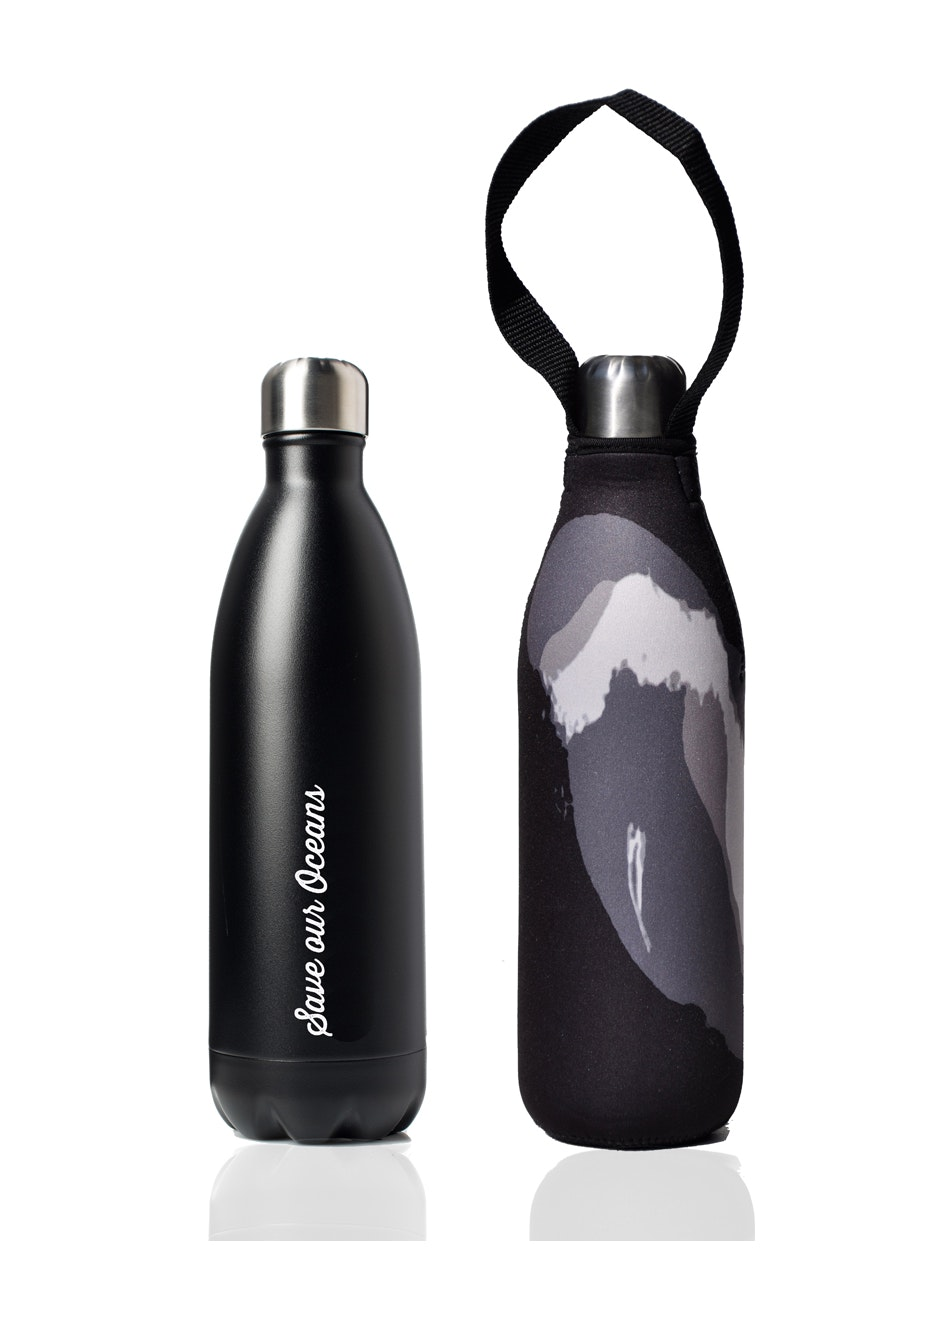 BBBYO - Future Bottle+ Carry Cover (Black Wave Print)- 750 ml Matt Black